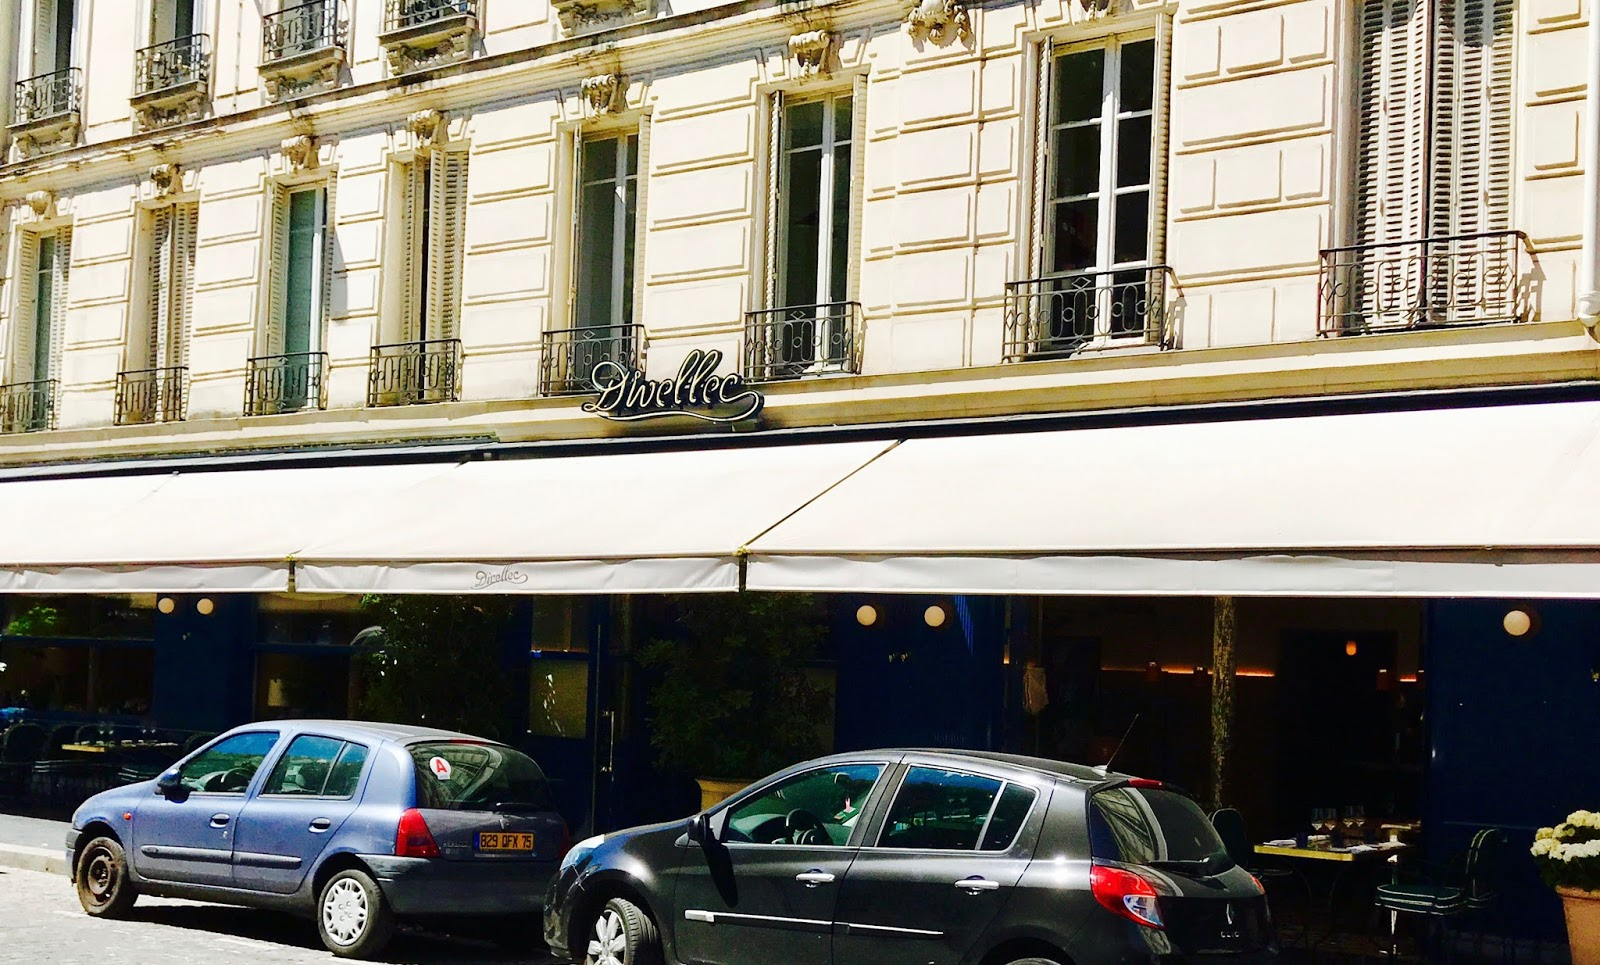 Divellec Restaurant Paris Missives